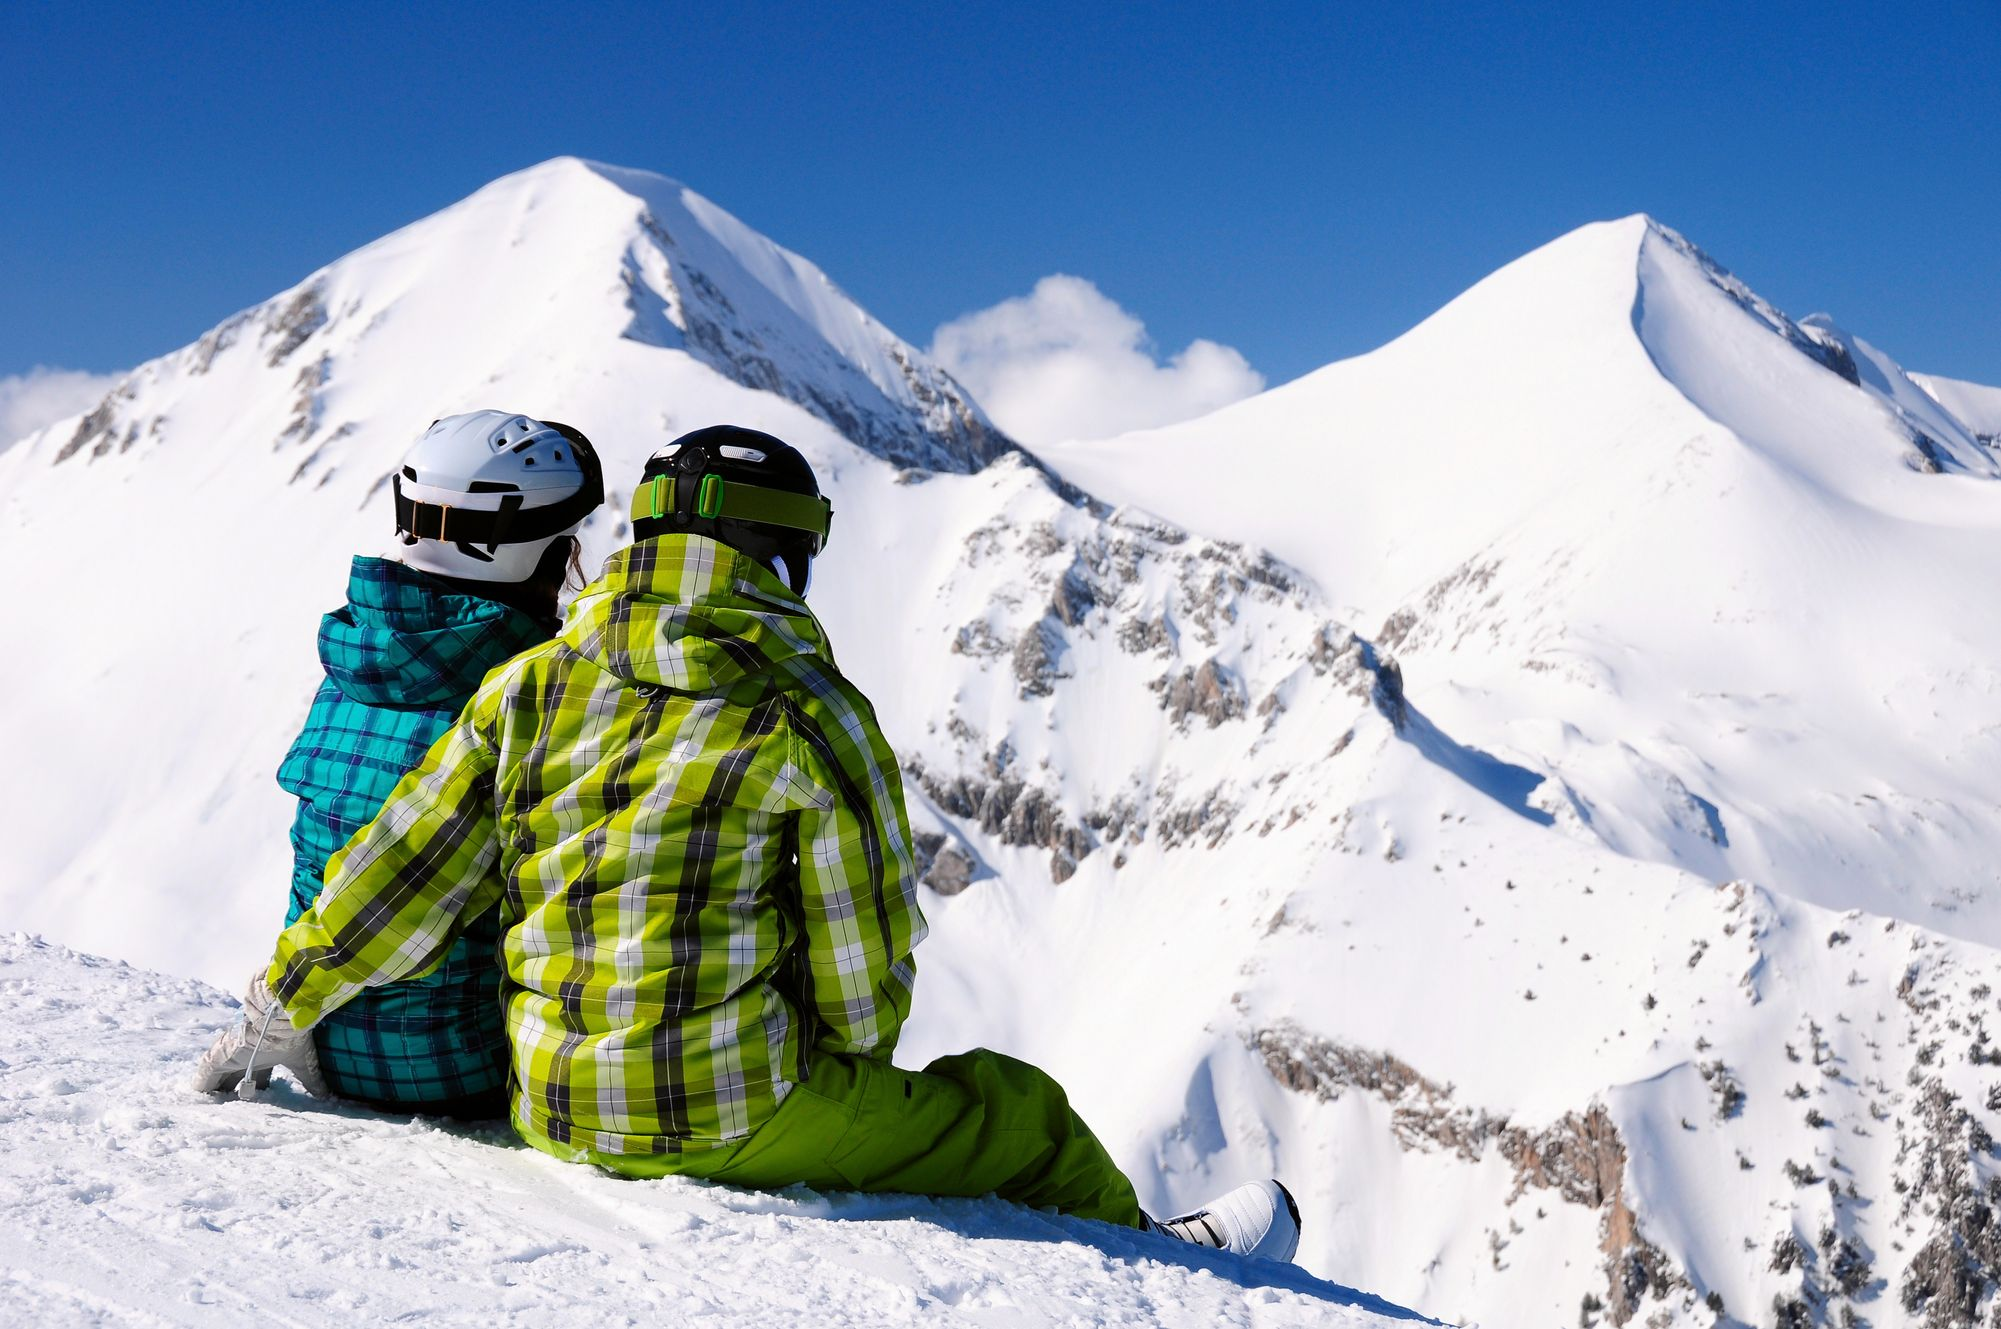 Skiers taking in the view at Vitosha Mountain